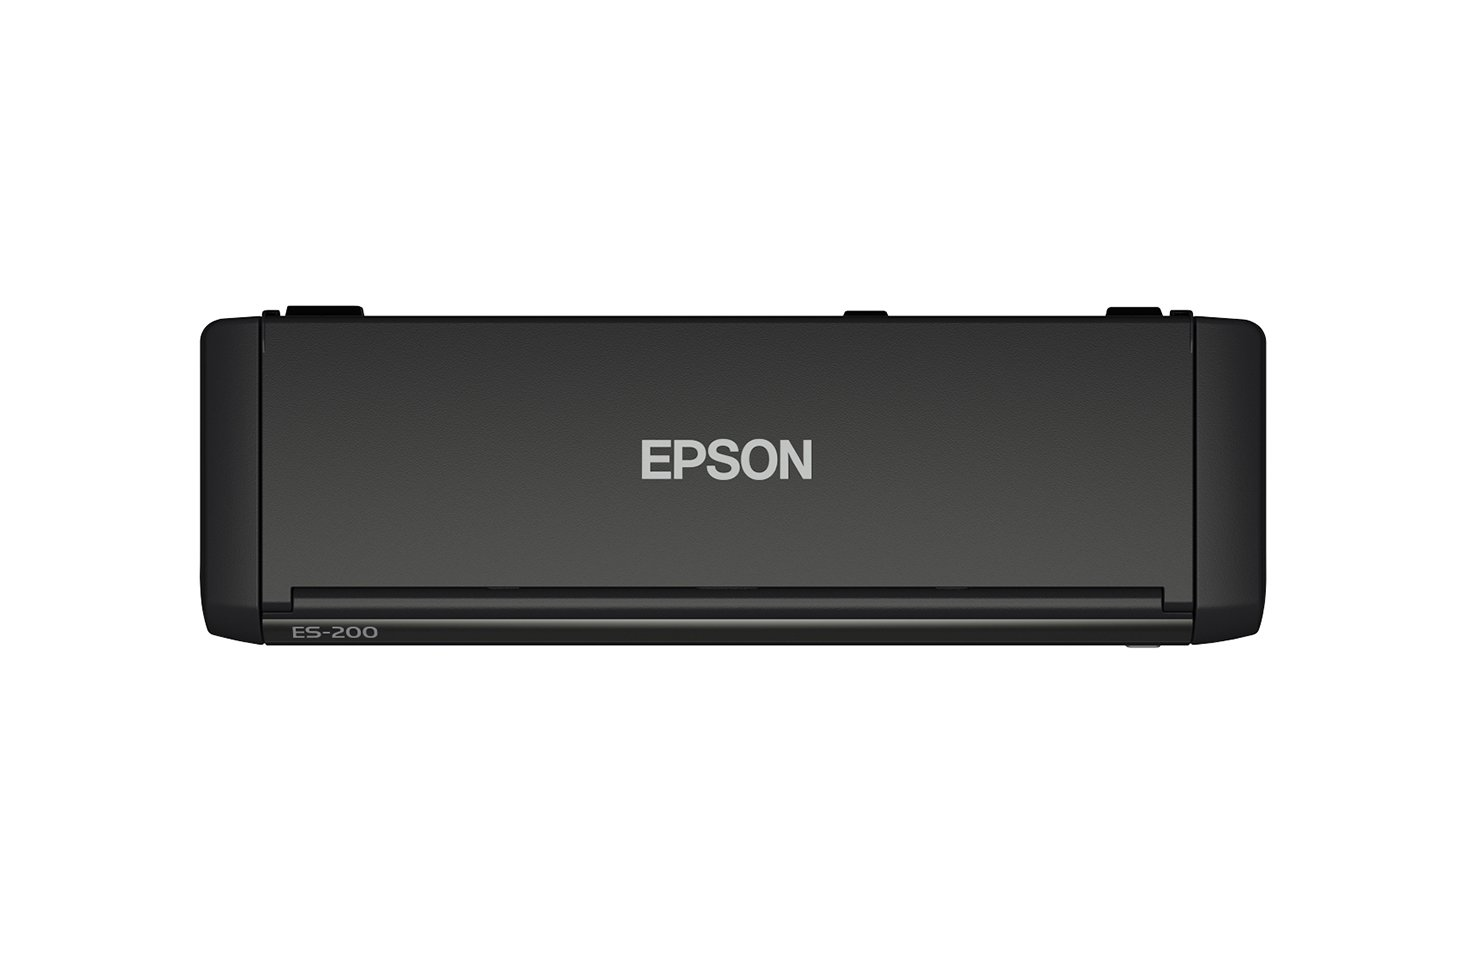 Epson WorkForce ES-200 Color Portable Document Scanner with ADF for PC and Mac, Sheet-fed and Duplex Scanning by Epson (Image #4)